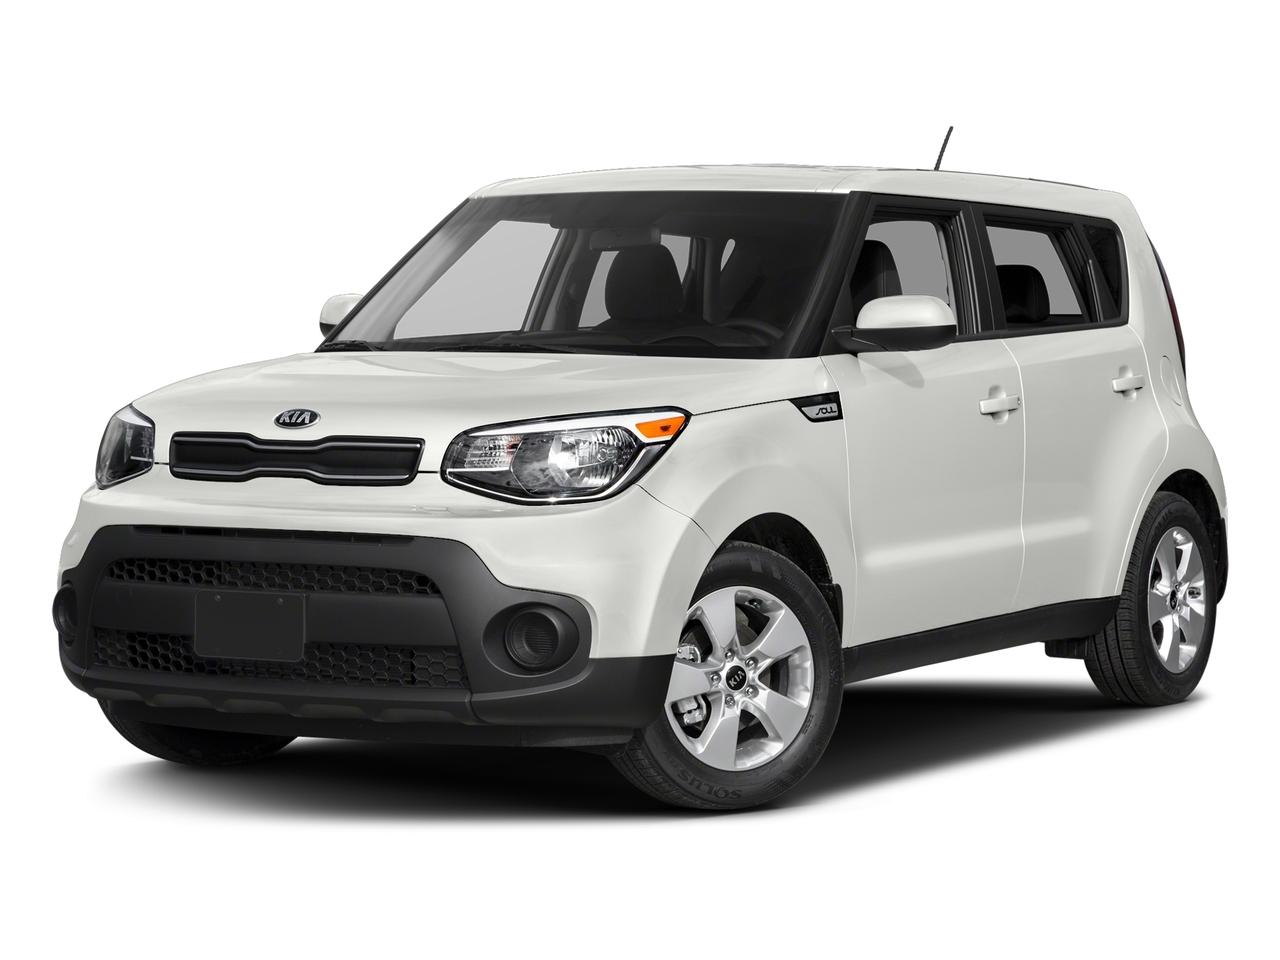 2017 Kia Soul Vehicle Photo in Oshkosh, WI 54904